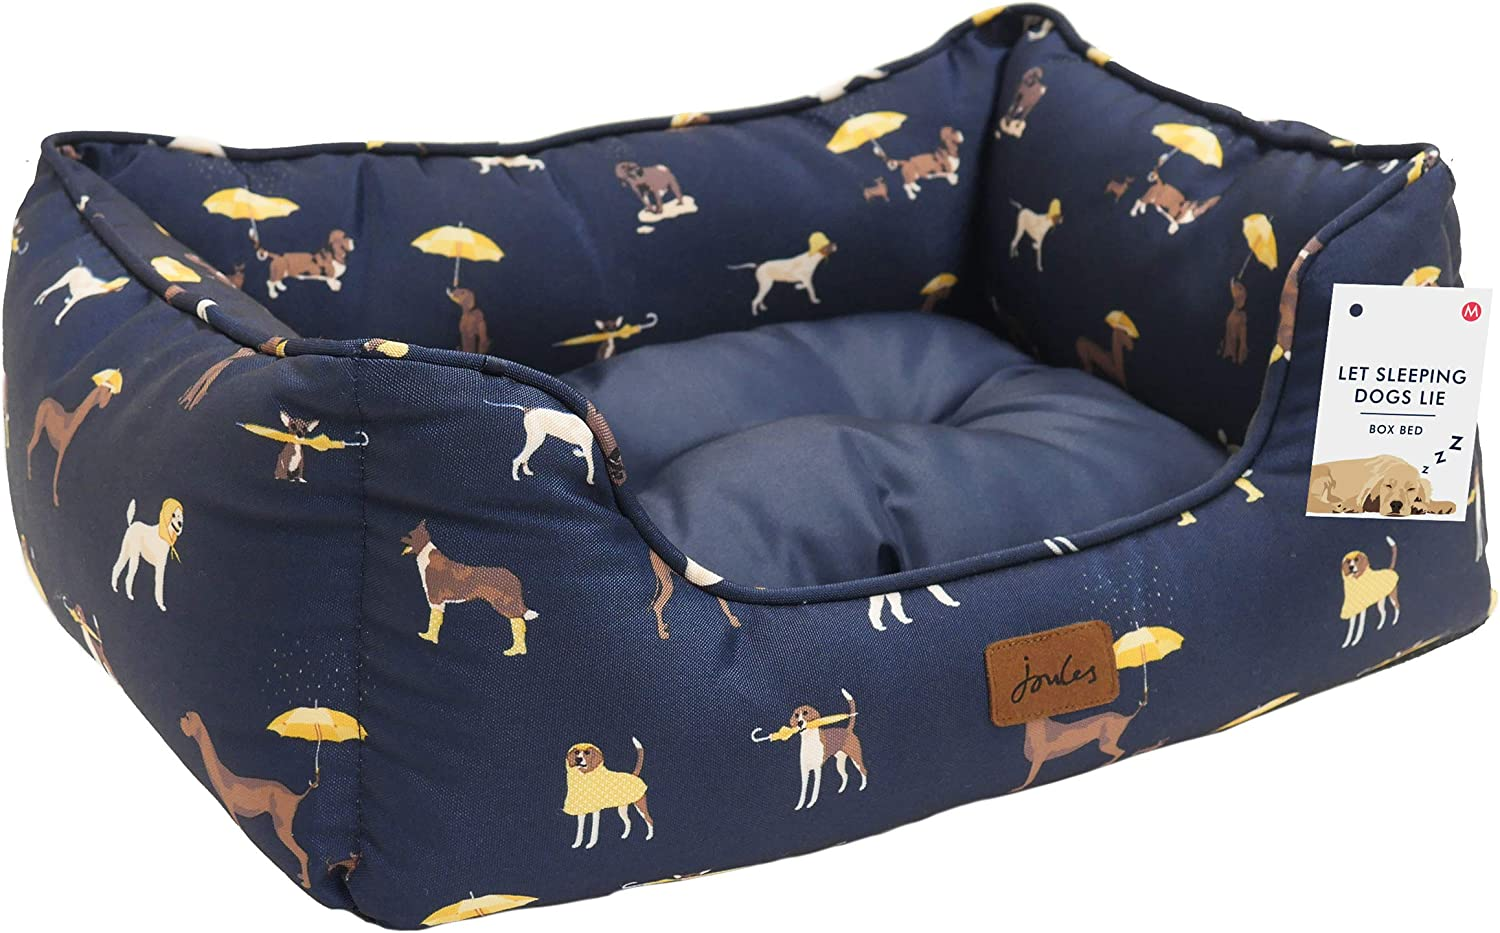 Rosewood Joules Super Soft Canvas Water Resistant Medium Dog Bed Machine Washable For Medium Dogs Navy Blue Raining Dog Print 69 Cm 27 Inch Amazon Co Uk Pet Supplies